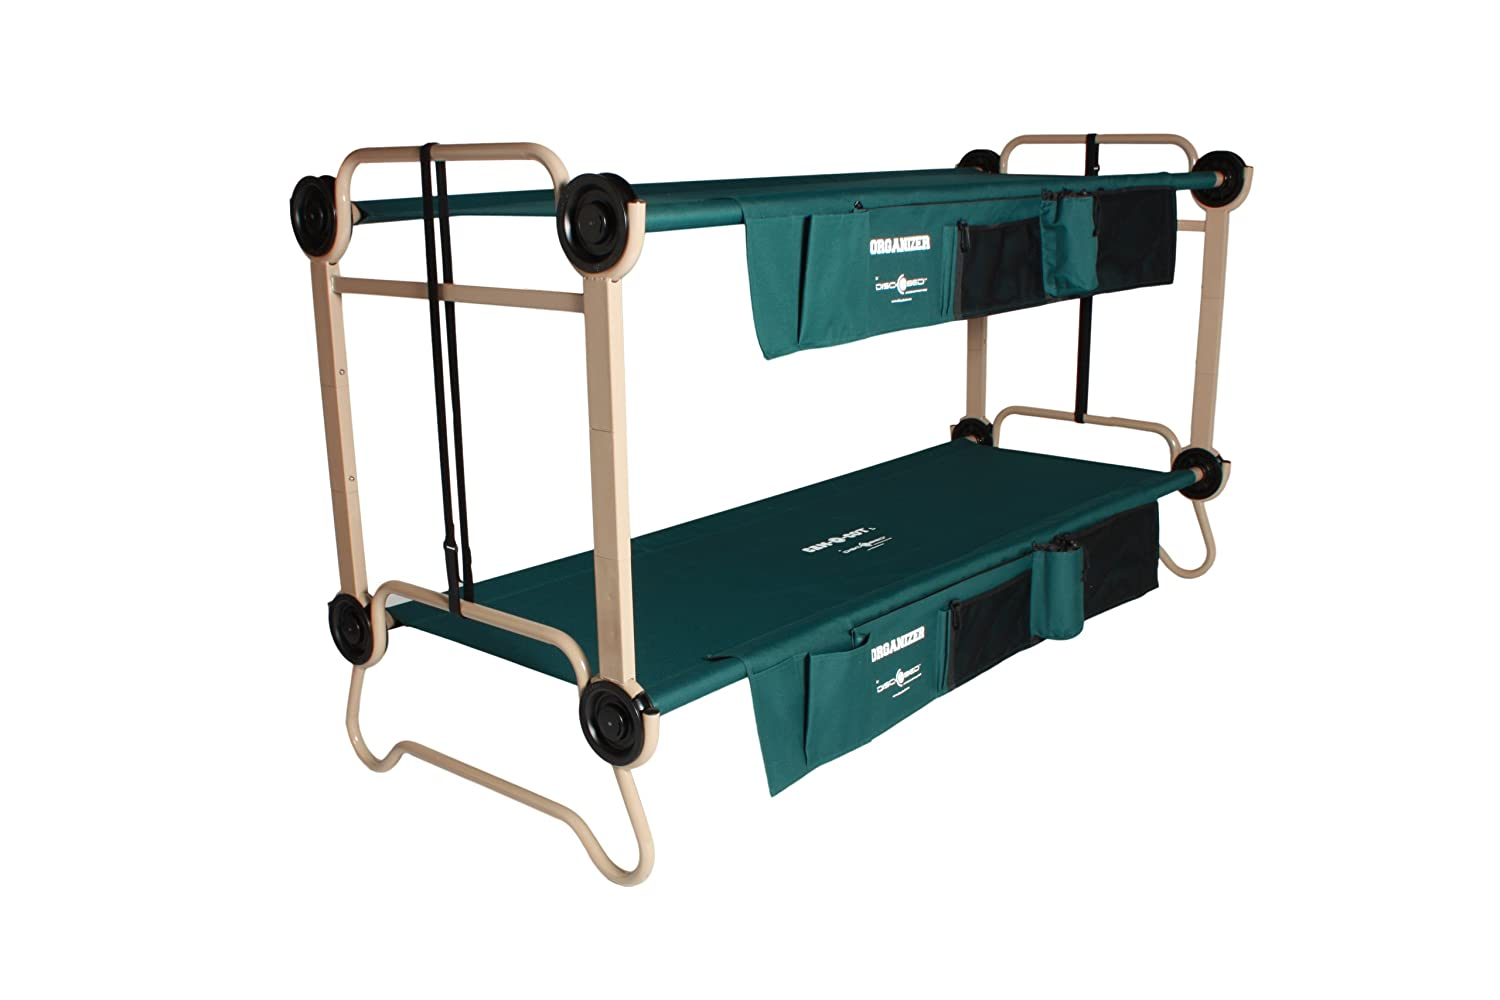 Amazon Disc O Bed Large With Organizers And Leg Extensions Camping Cots Sports Outdoors